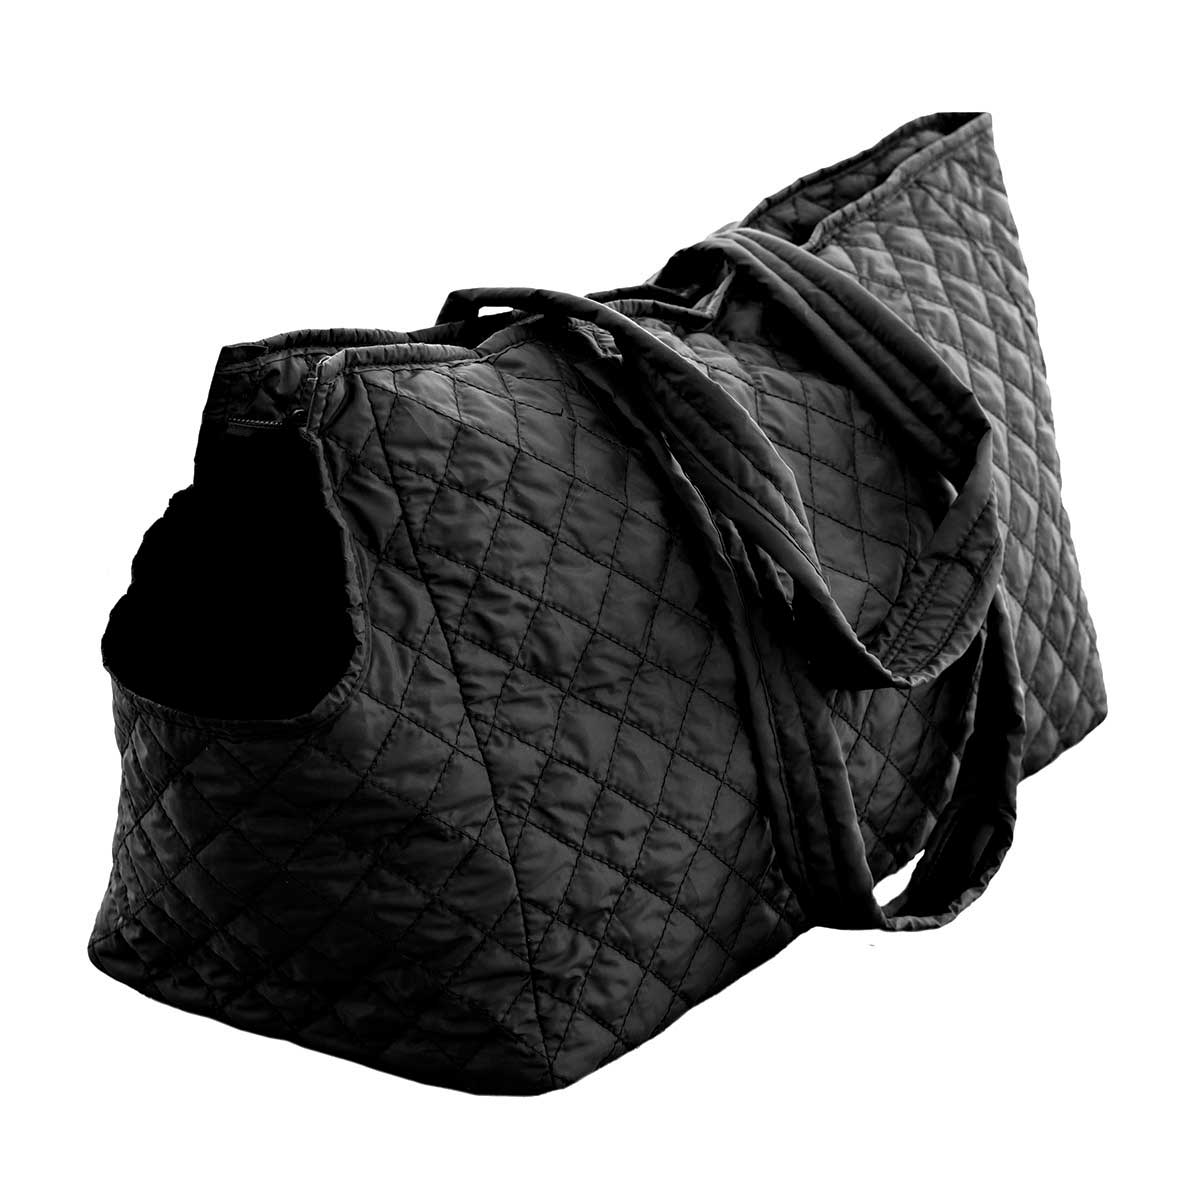 Multipet Pet Voyage Tacoma Quilted Black Tote for Cats and Dogs